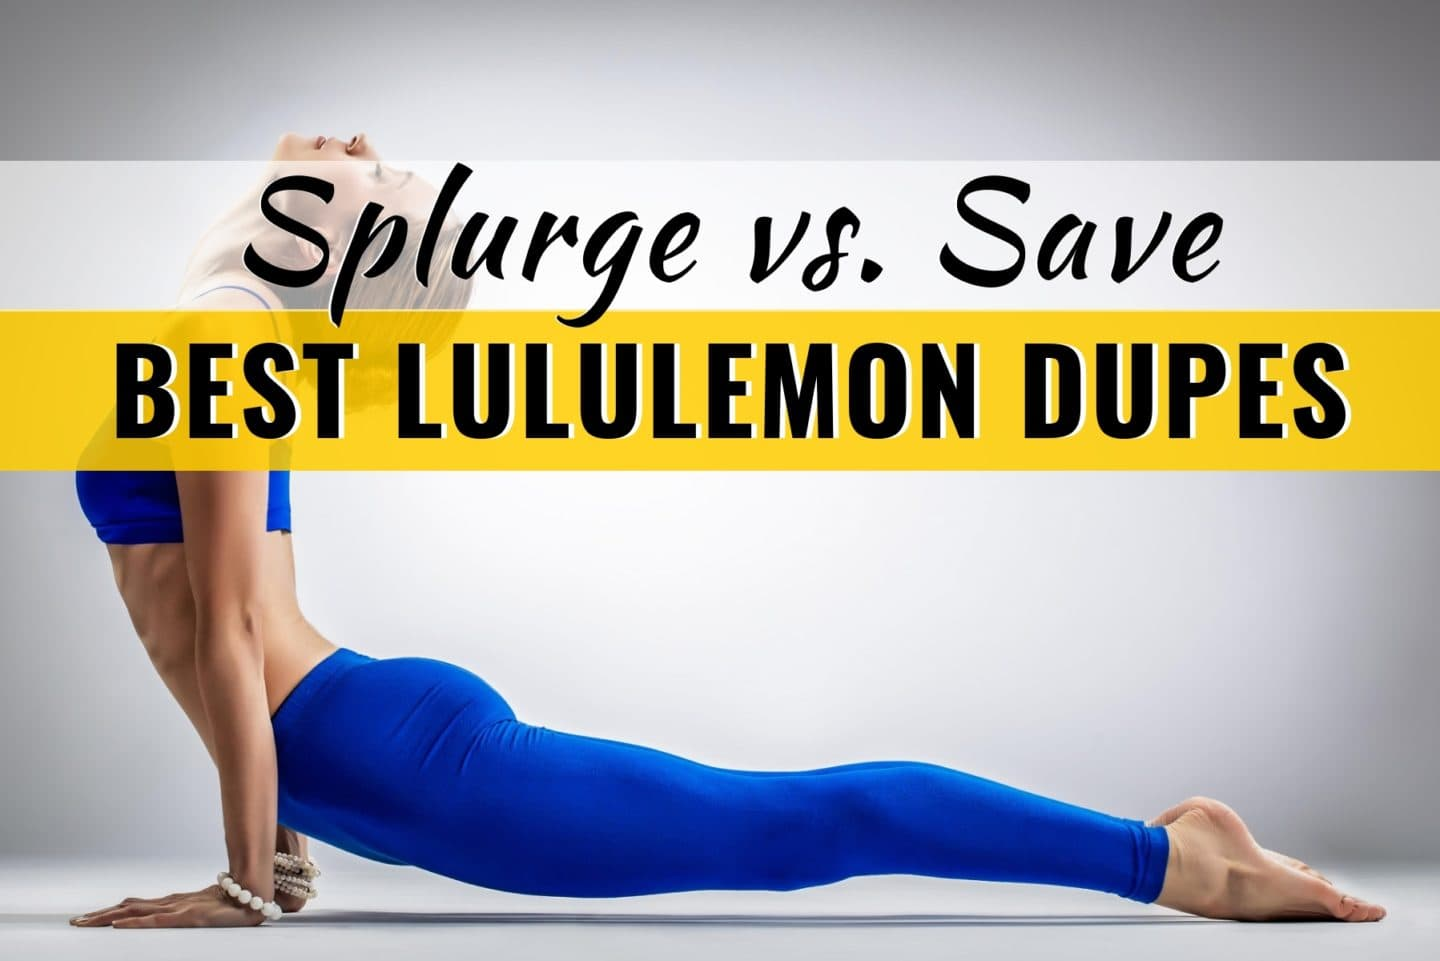 Splurge vs Save on the Best Lululemon Dupes